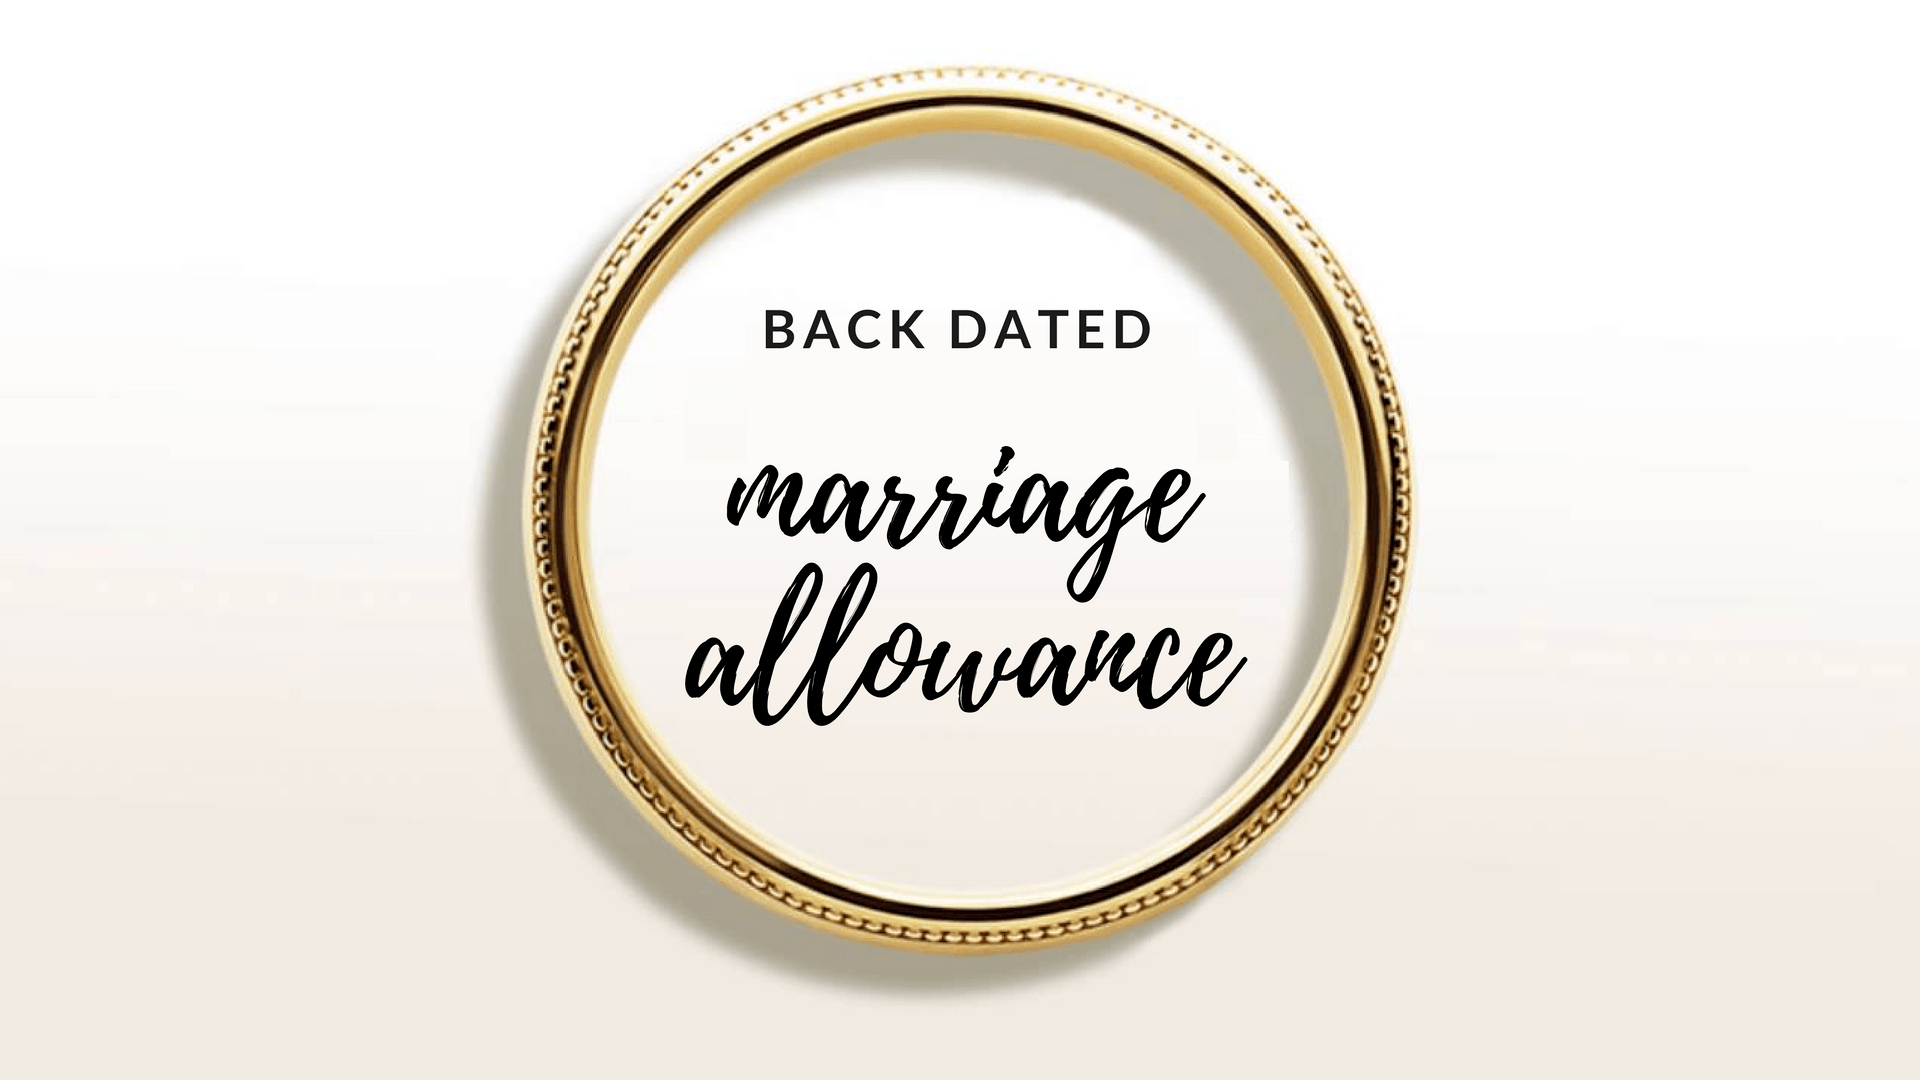 MARRIAGE ALLOWANCE BACKDATED UP TO 4 YEARS